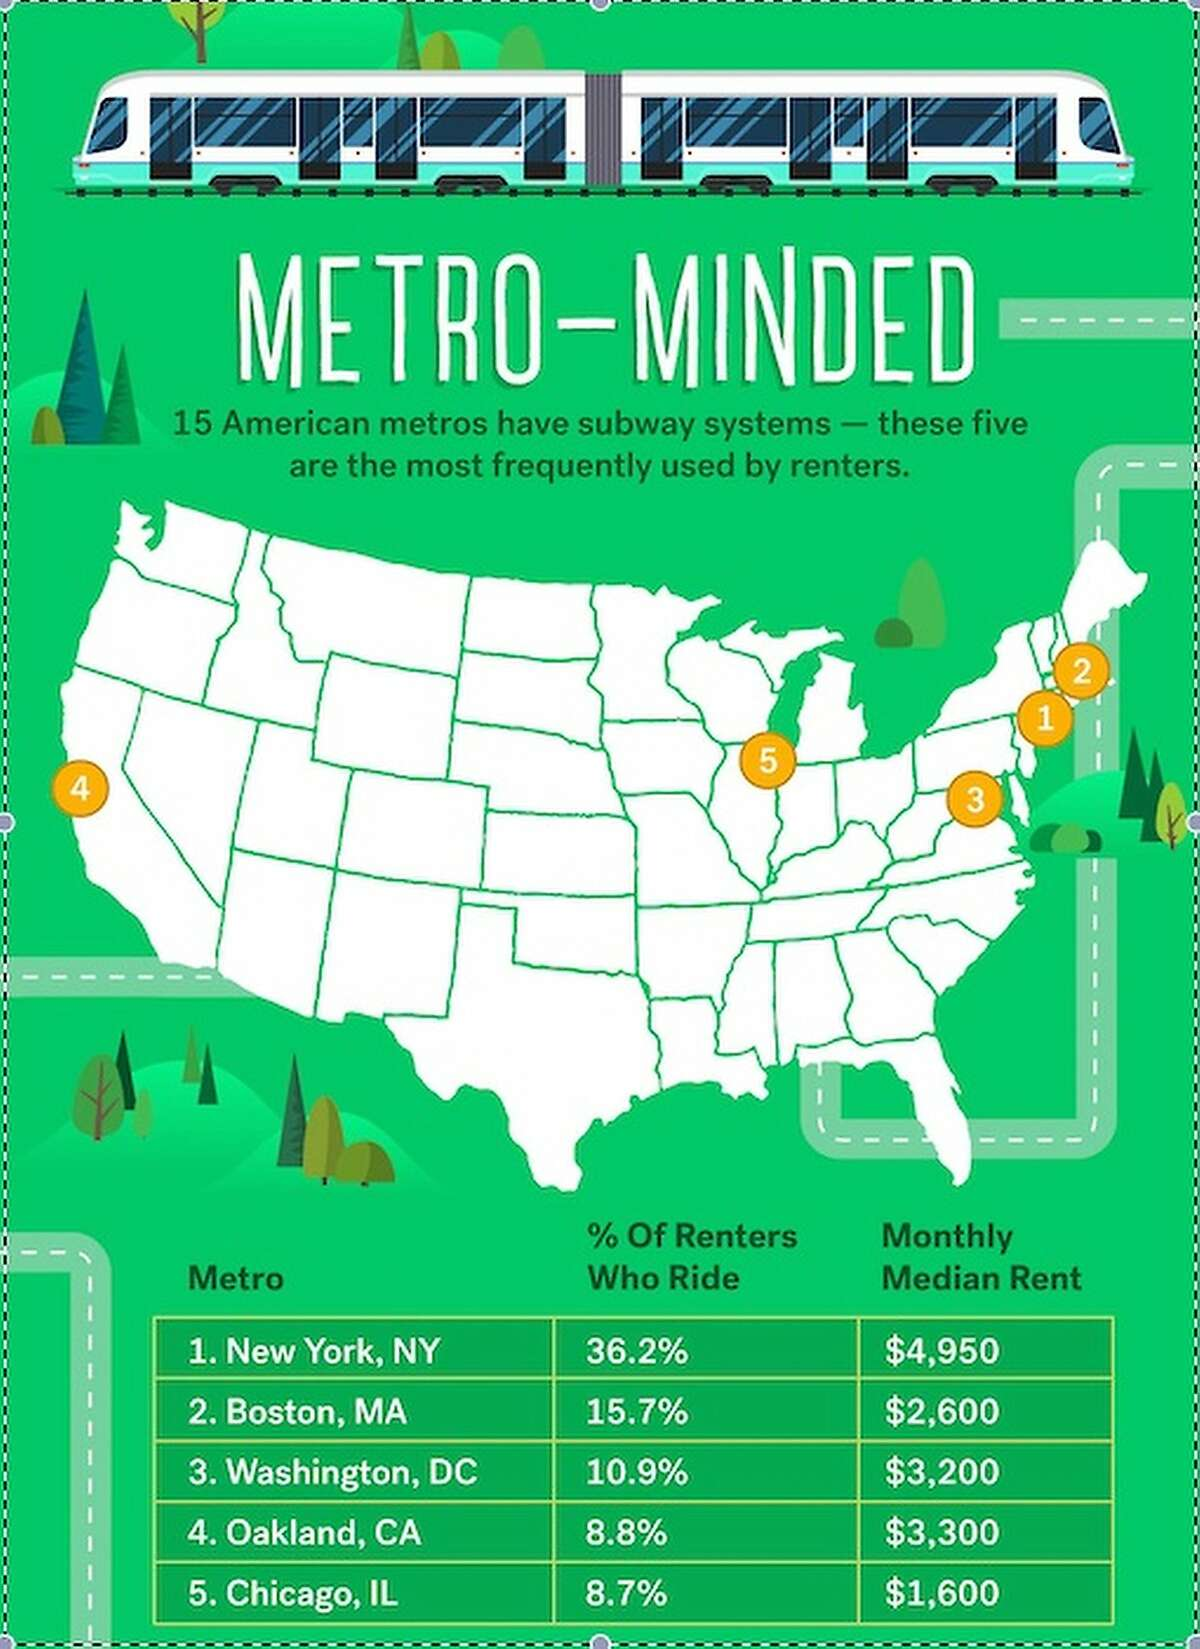 New York's subway system is used more frequently by renters than any other metro rail transit service in the nation.